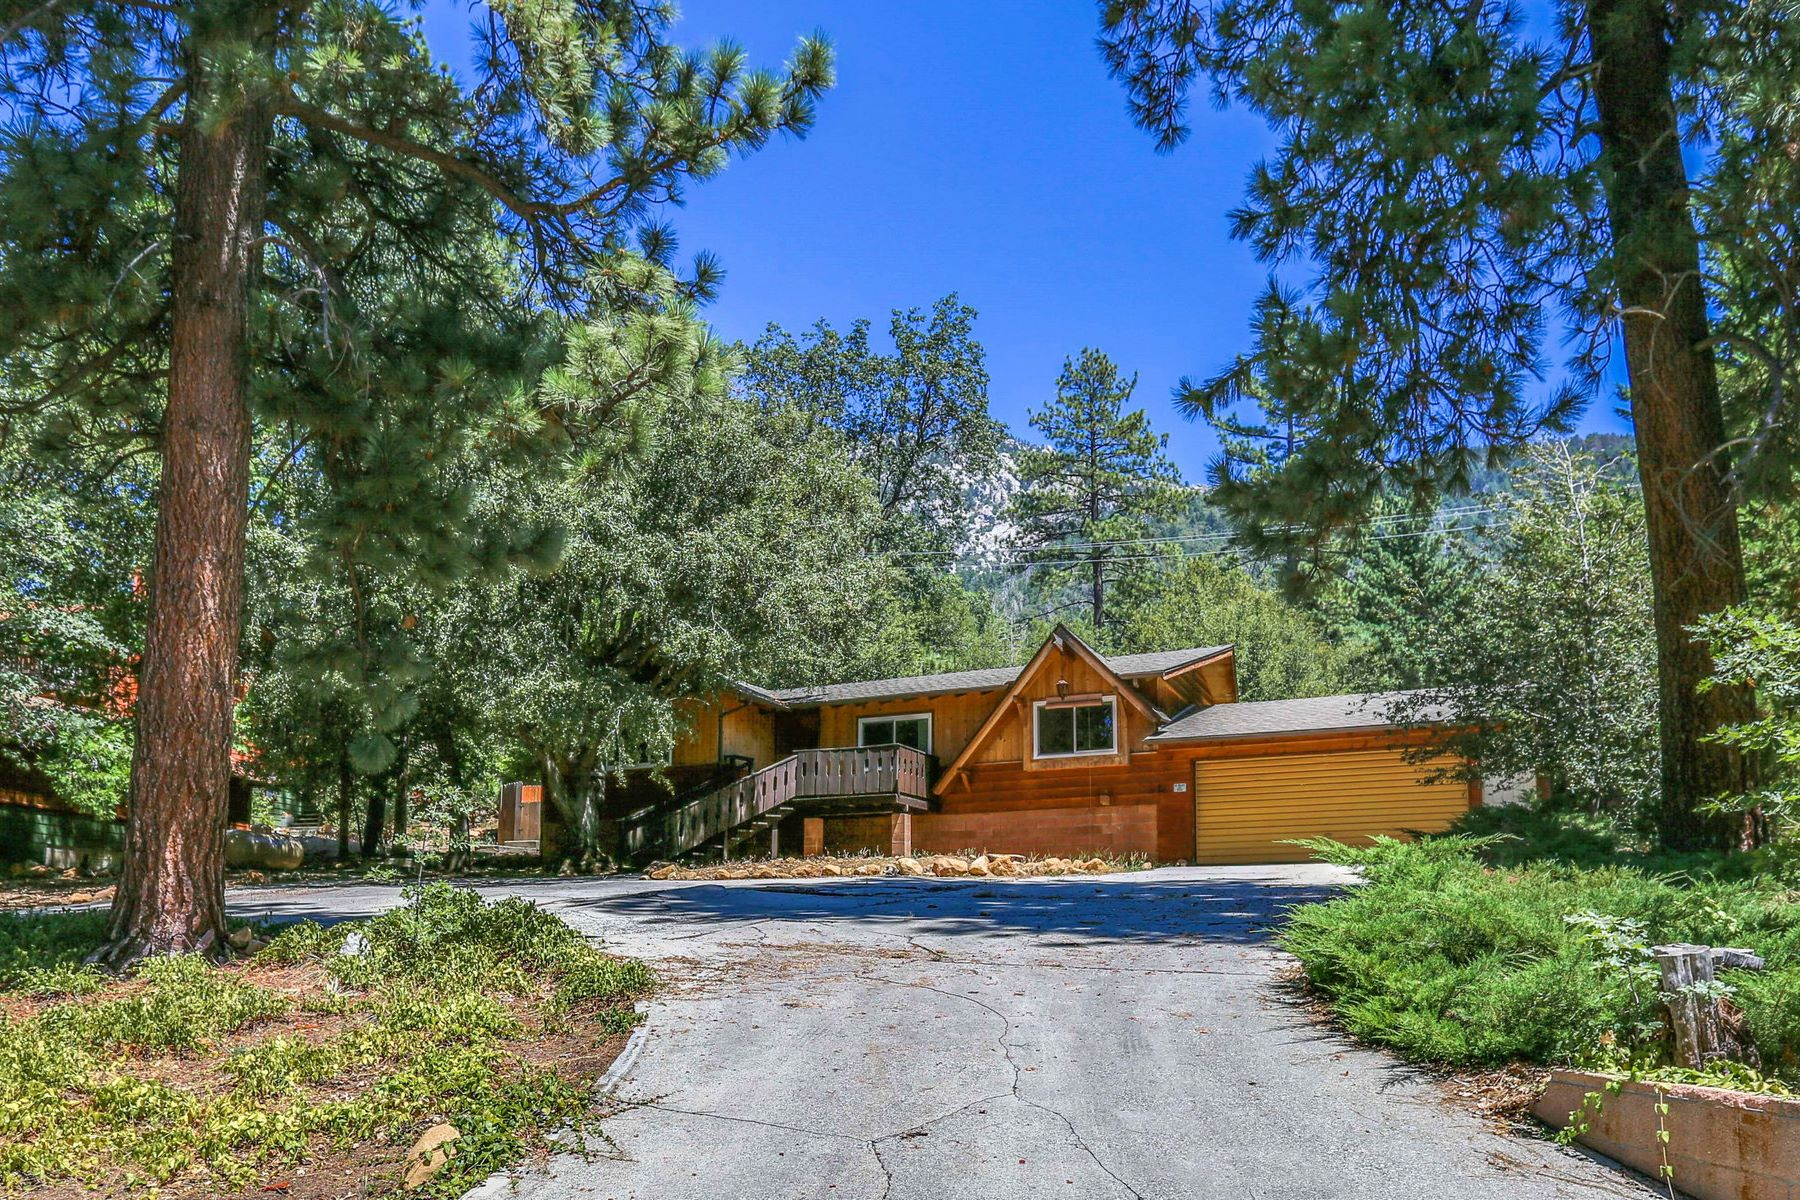 Single Family Homes for Sale at 25440 Rim Rock Road 25440 Rim Rock Rd Idyllwild, California 92549 United States